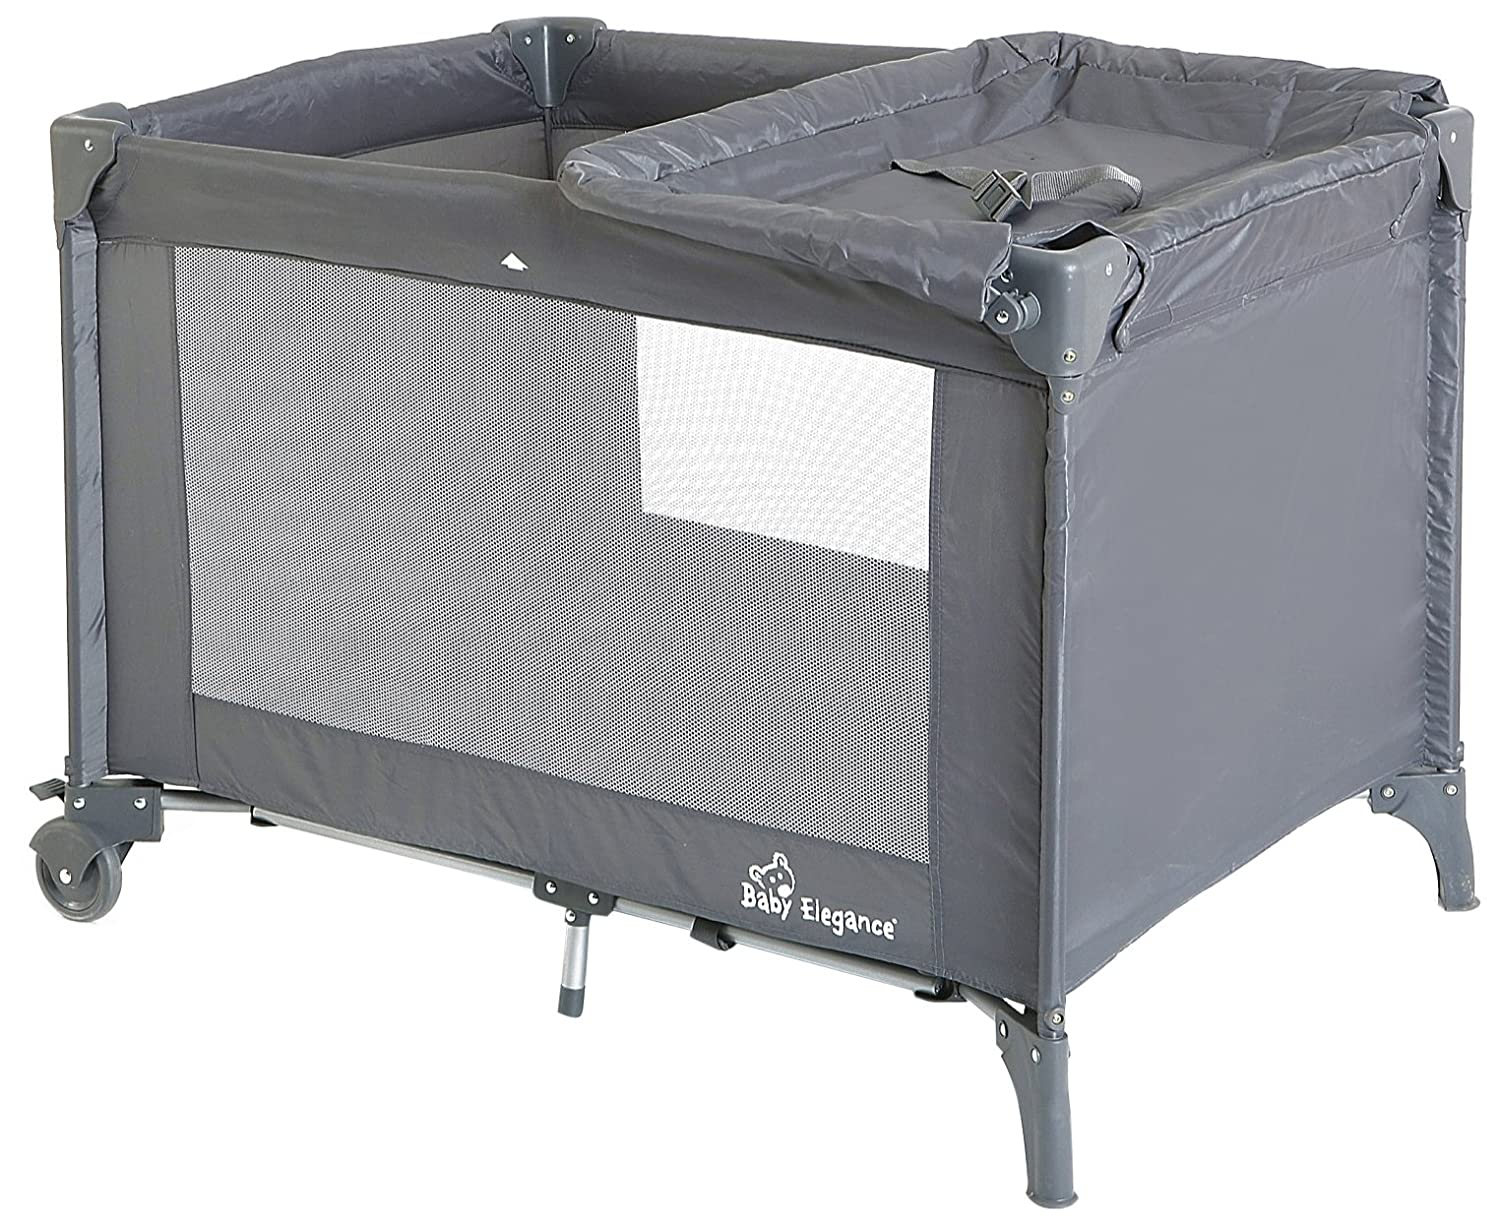 Baby Elegance Travel Cot (Large, Grey) 1263